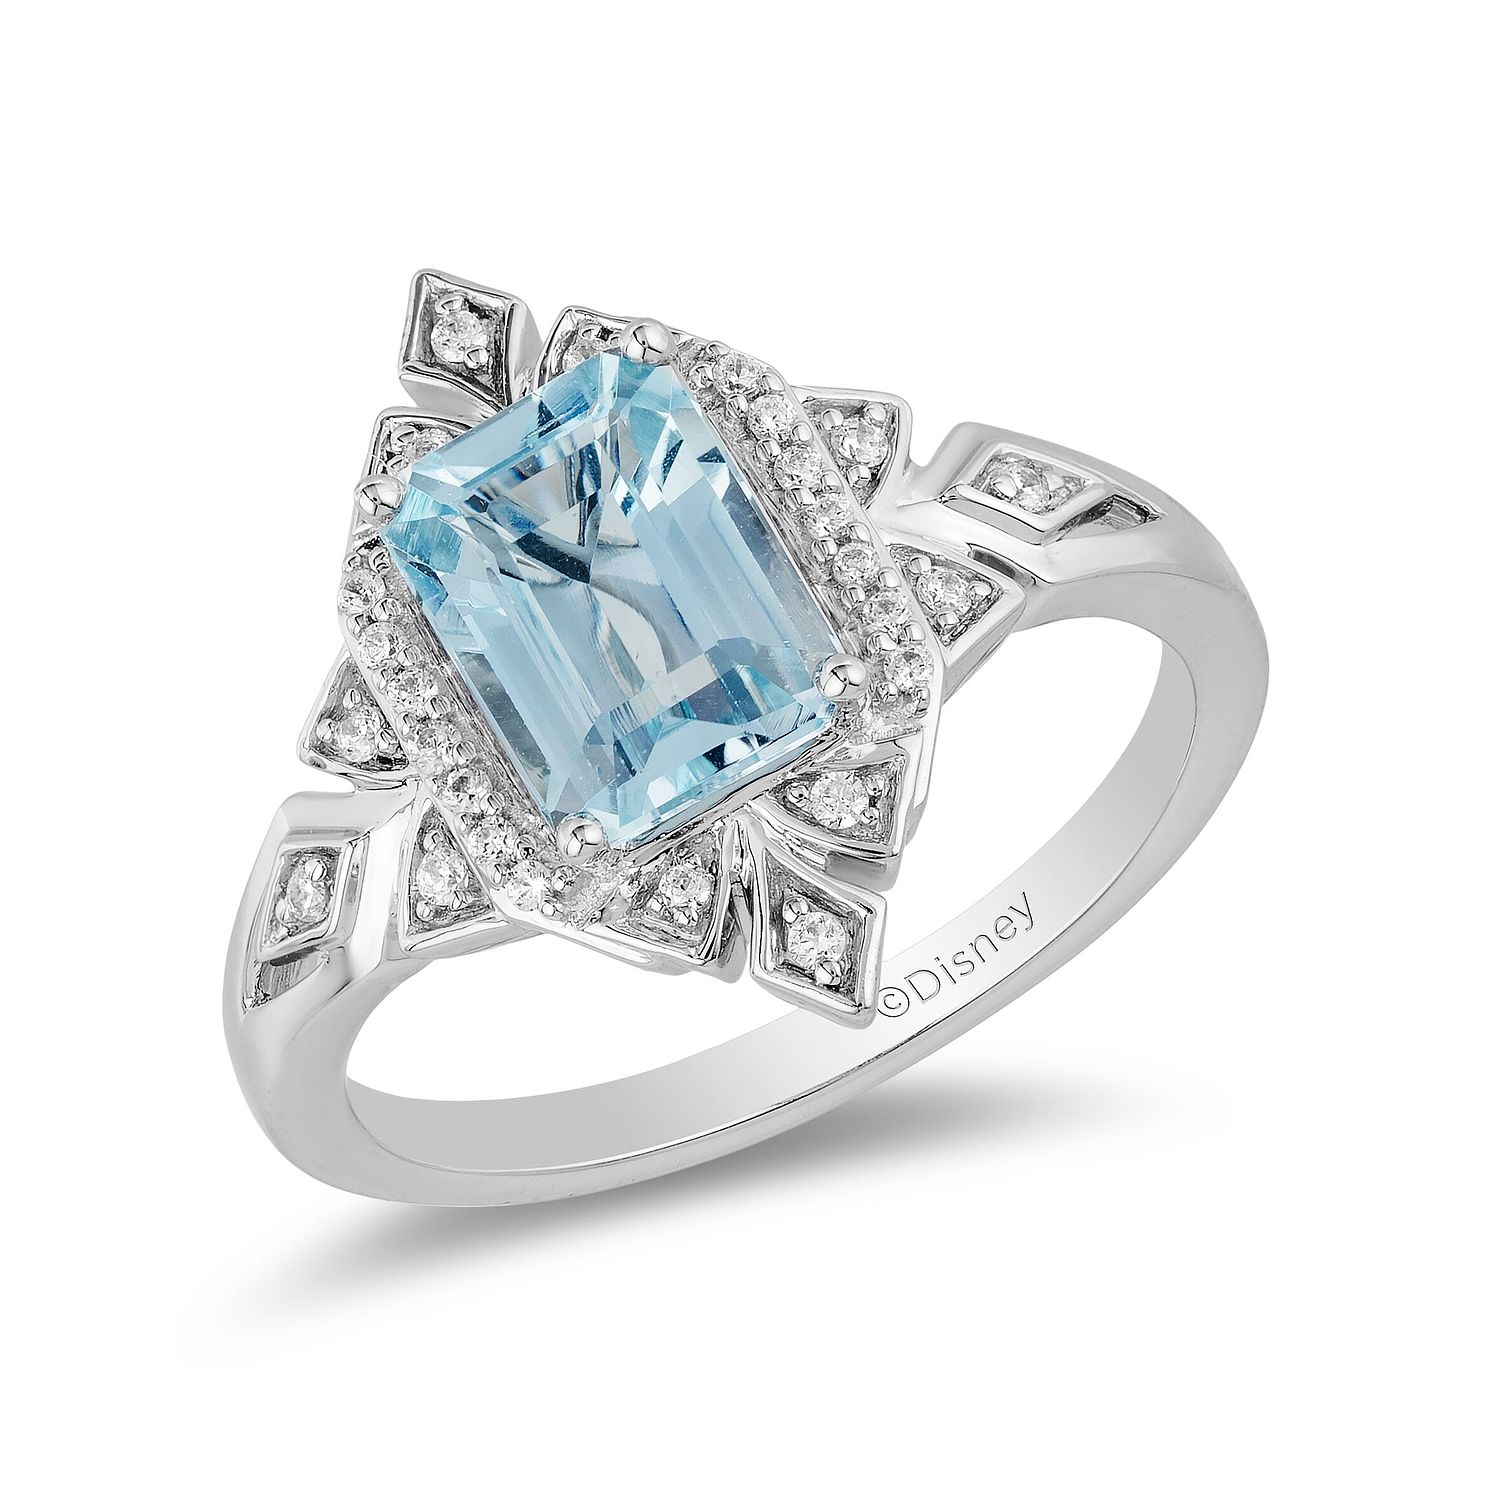 Enchanted Disney Fine Jewelry Blue Topaz & Diamond Elsa Ring - Product number 6110665